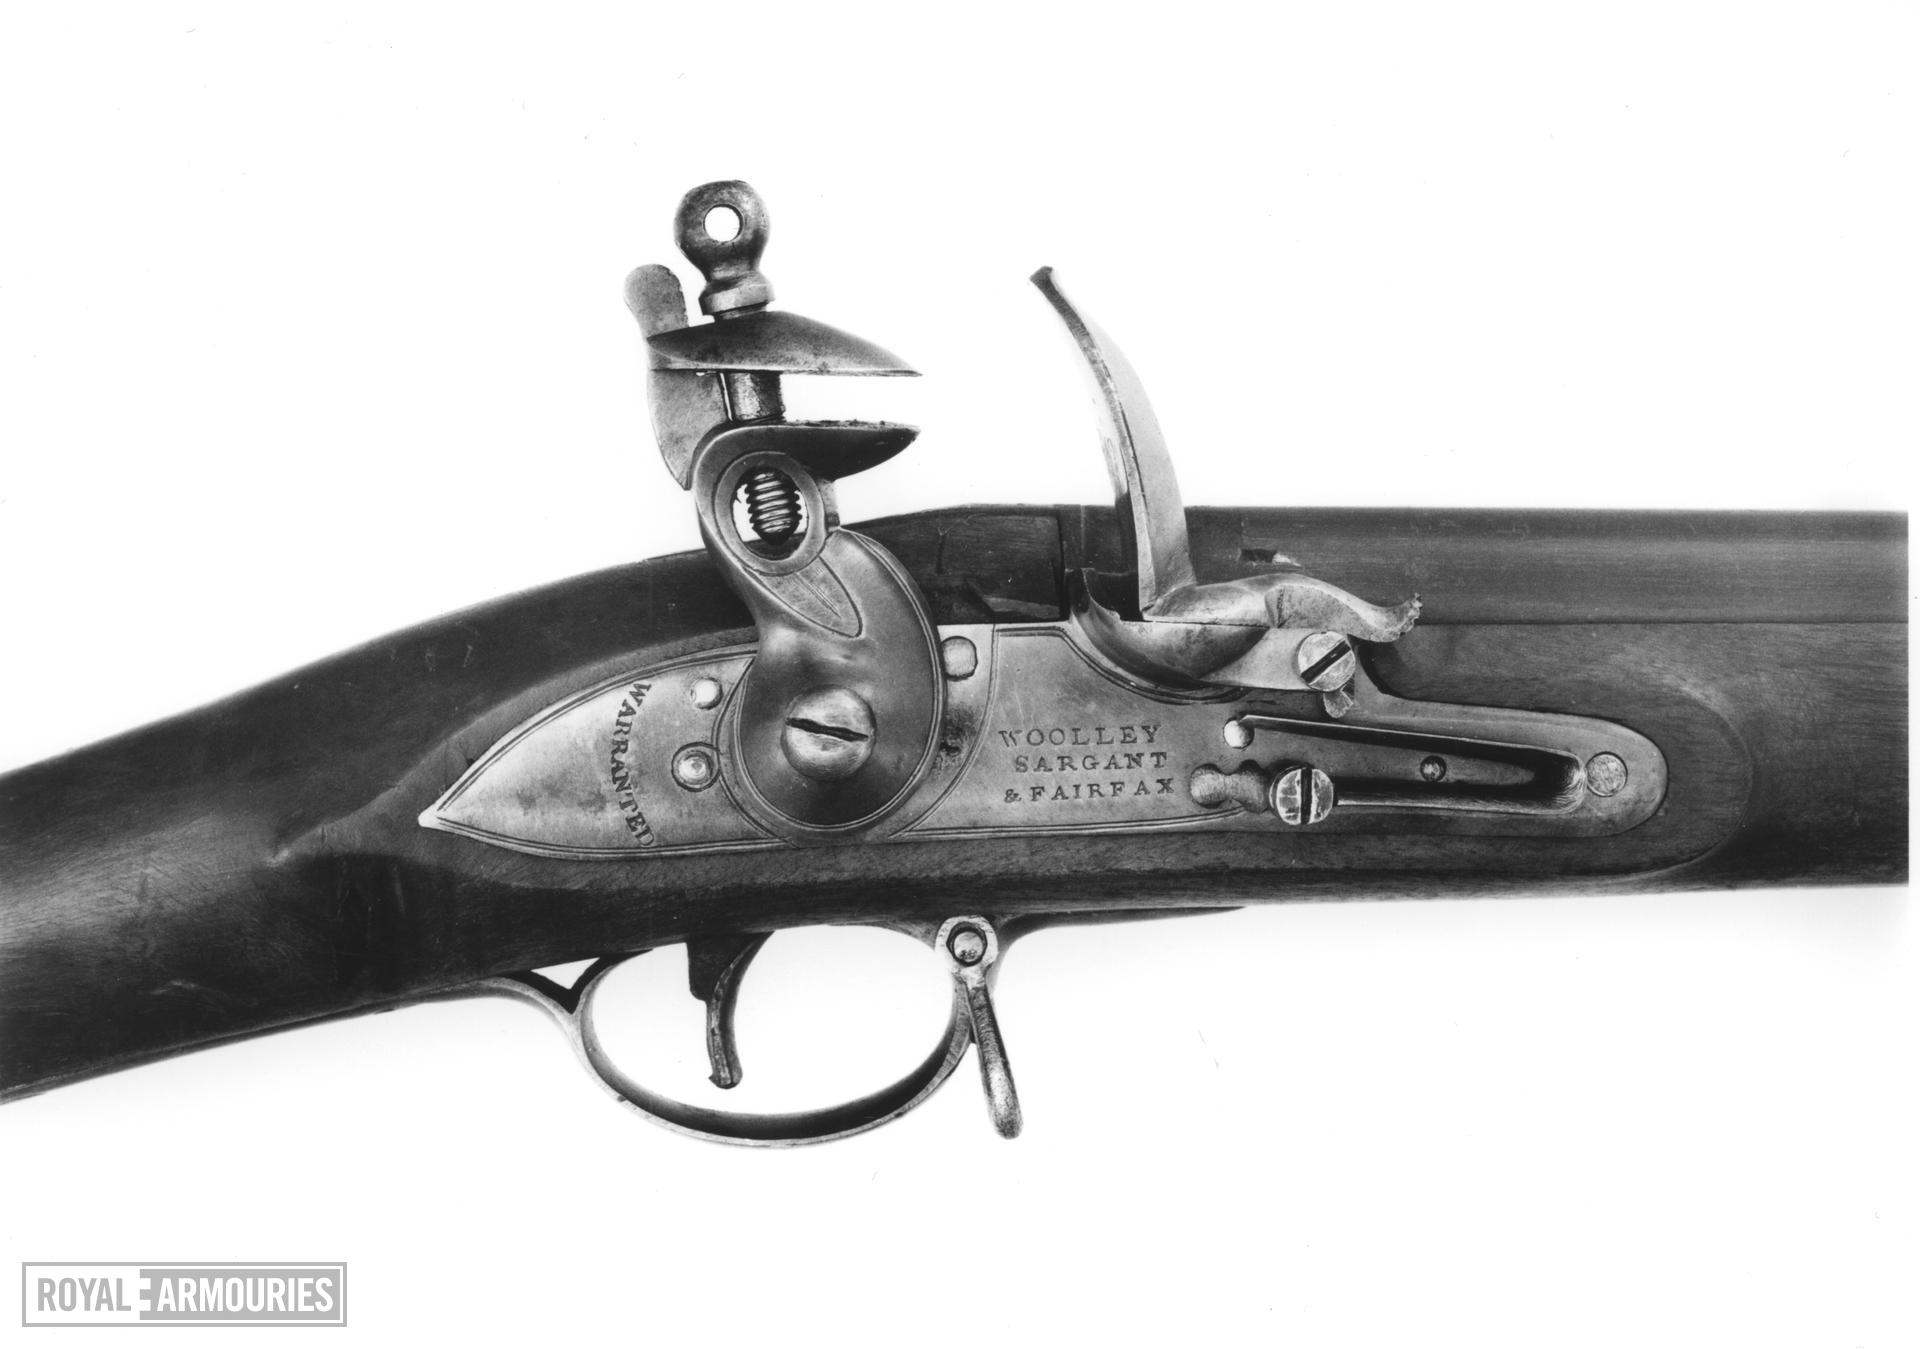 Flintlock muzzle-loading carbine - By Woolley, Sargant and Fairfax Part of a Chest of Arms, see XVIII.467